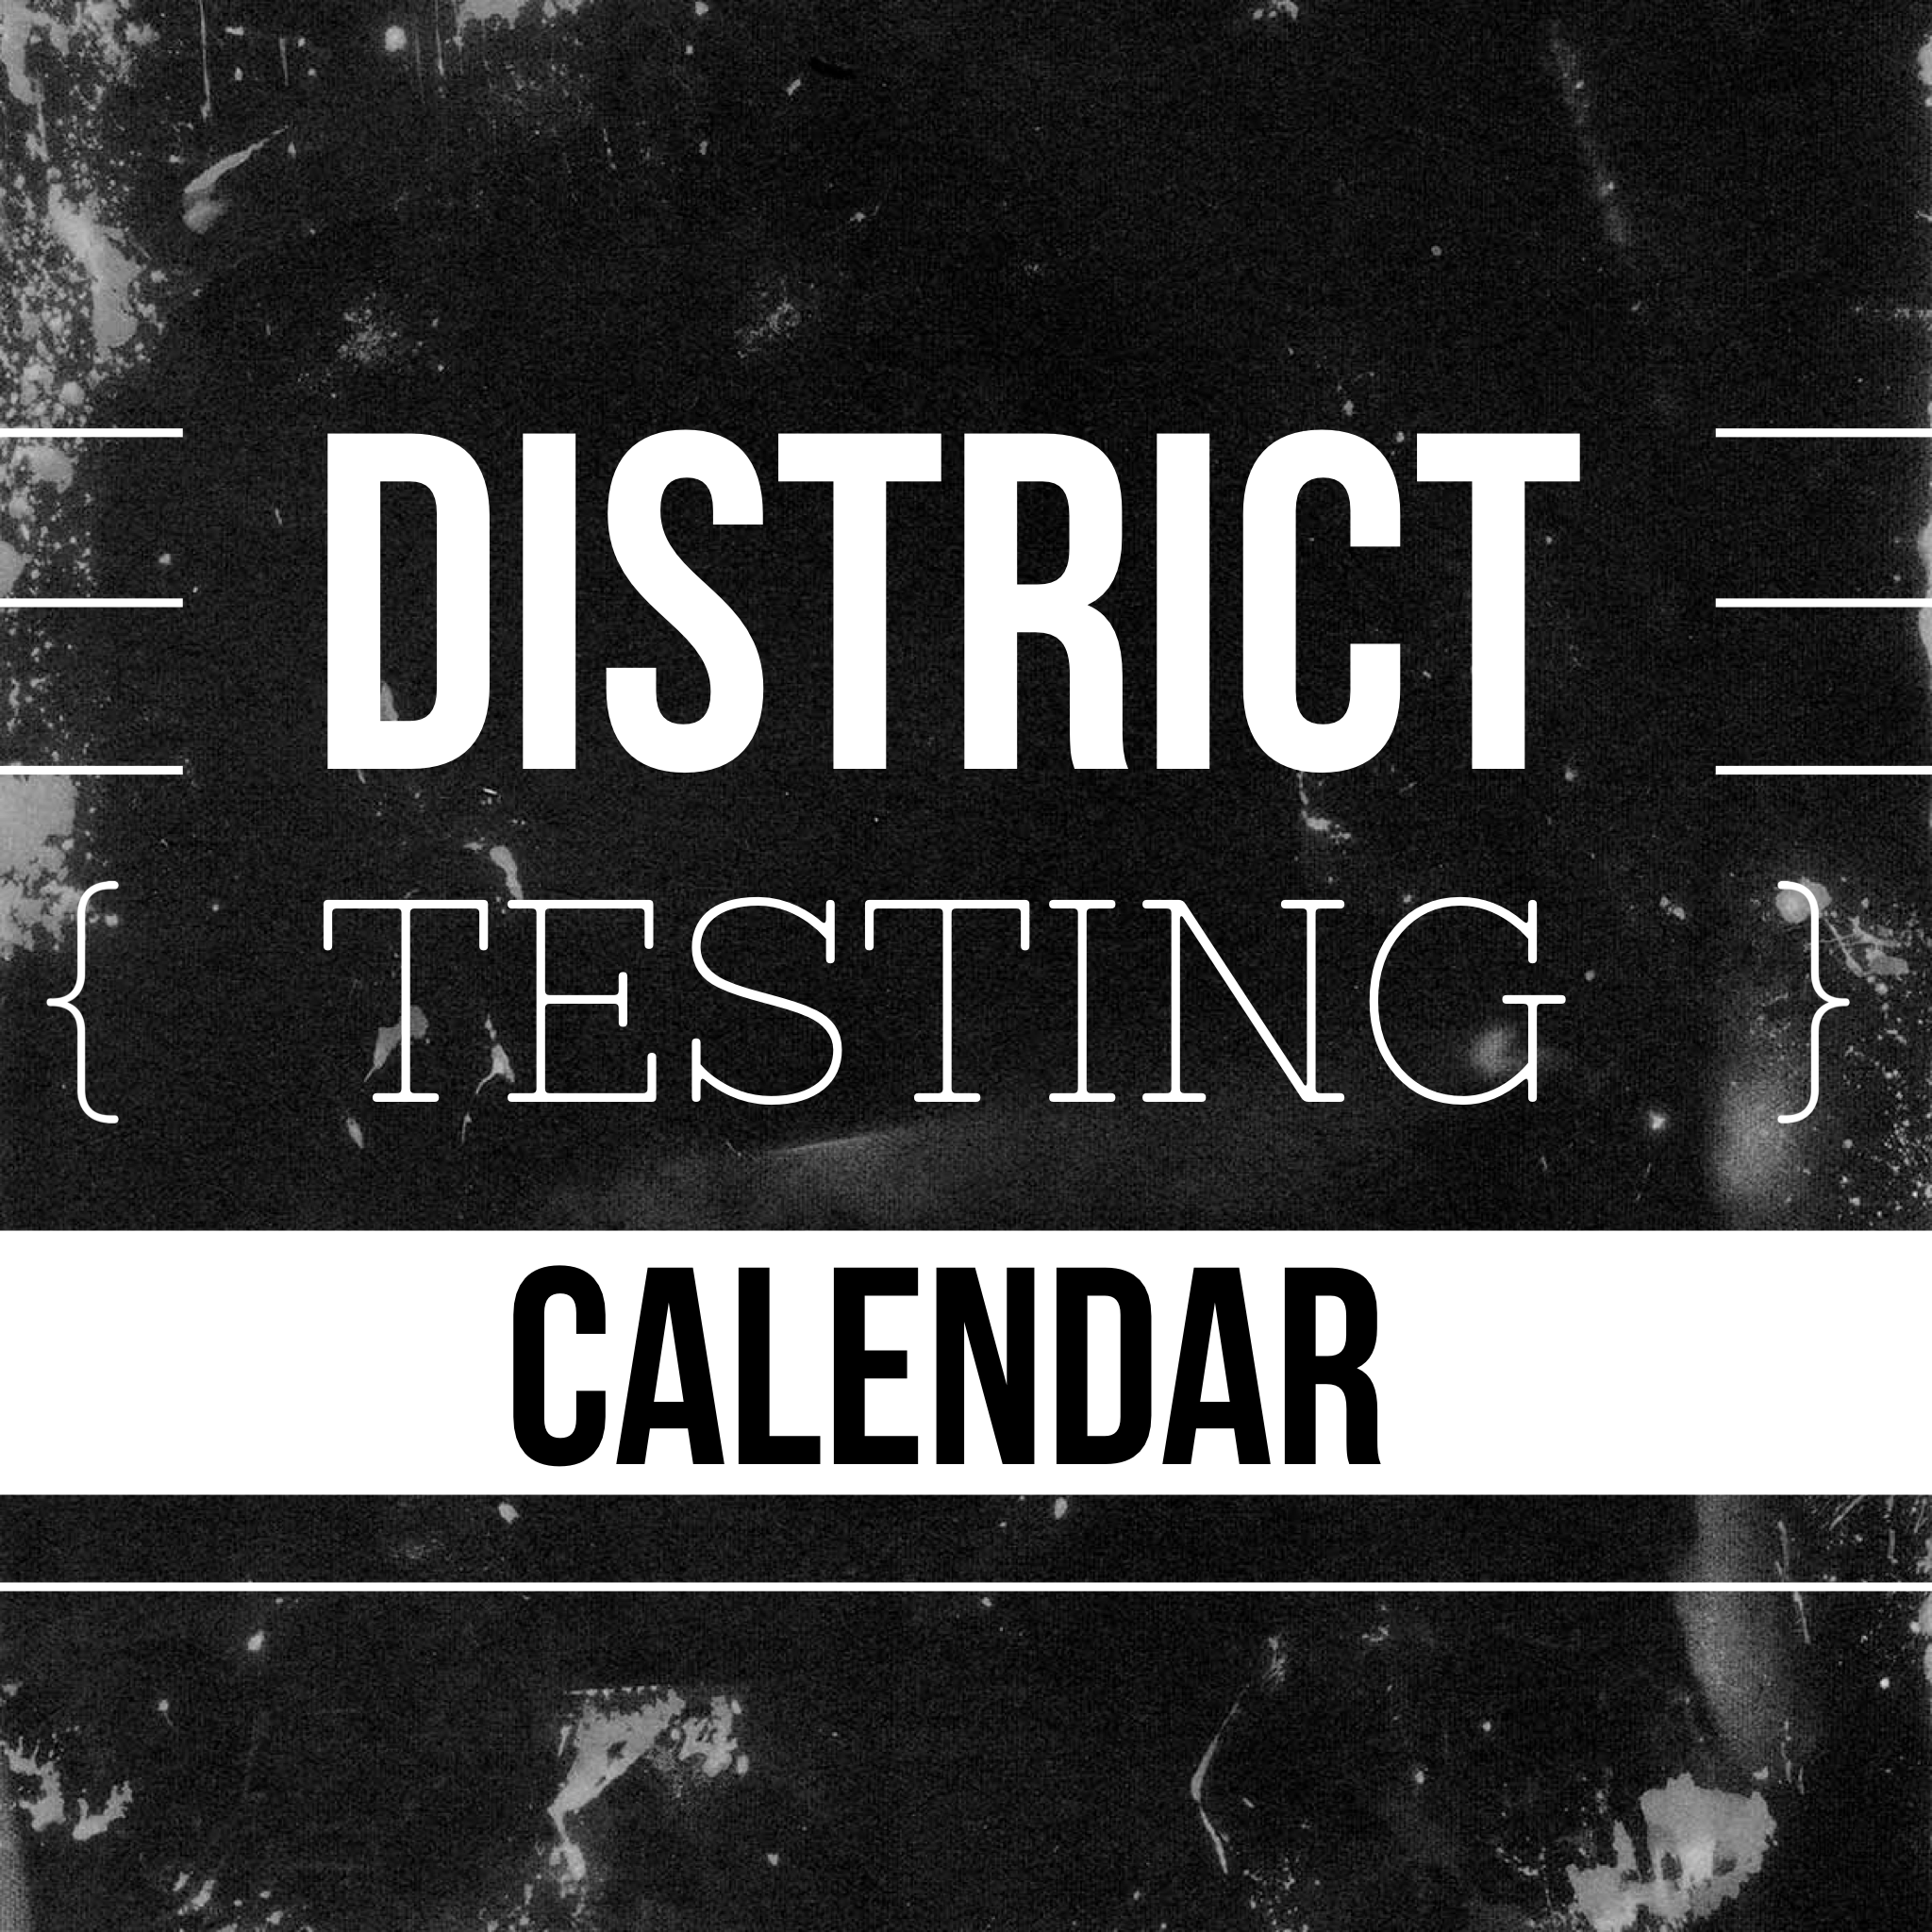 District Testing Calendar